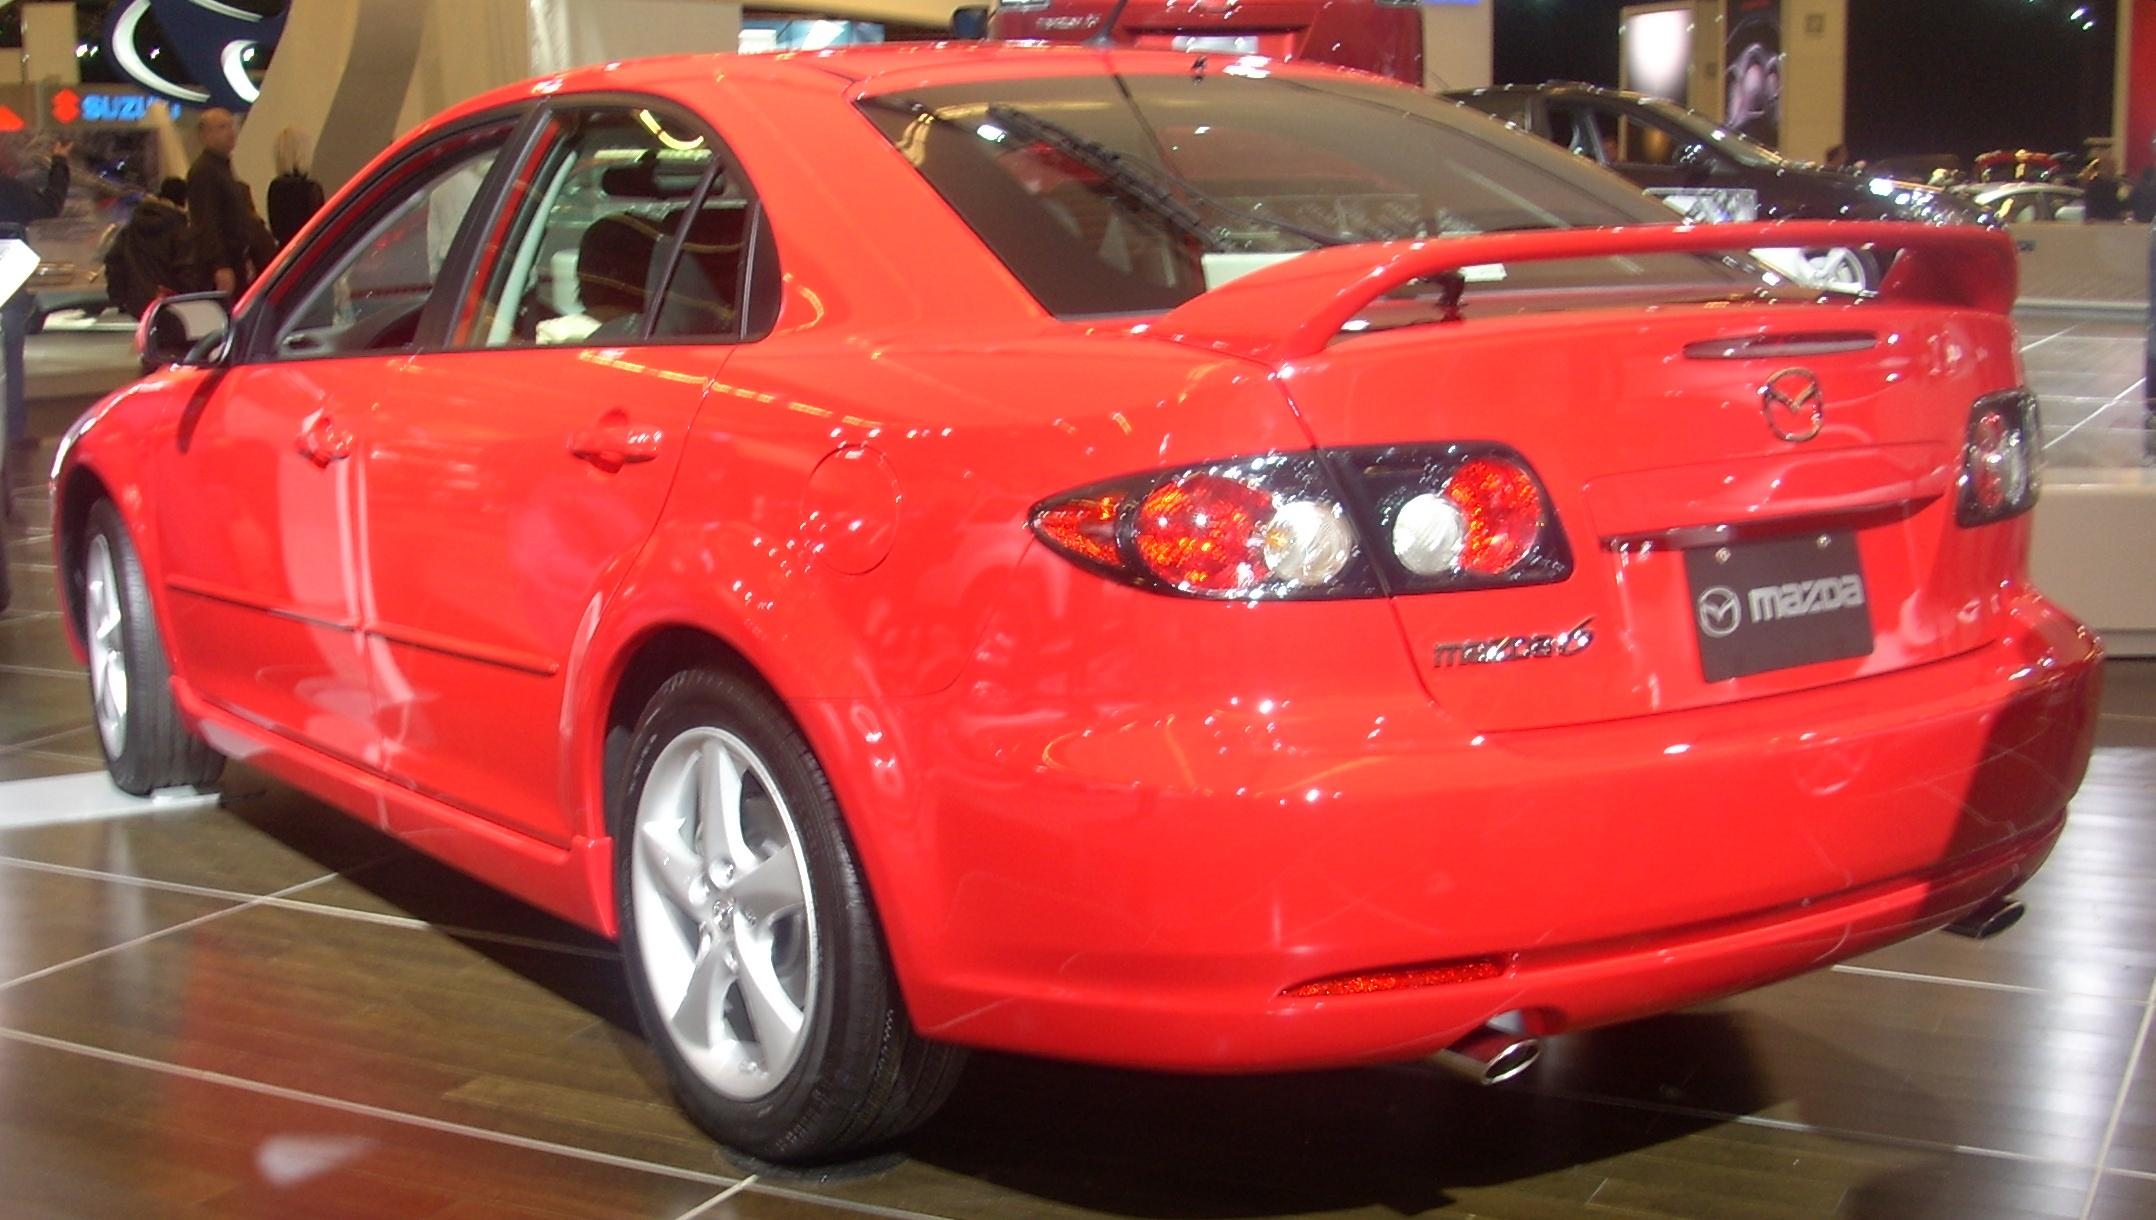 https://upload.wikimedia.org/wikipedia/commons/e/e4/%2708_Mazda6_Hatchback_%28Montreal%29.jpg